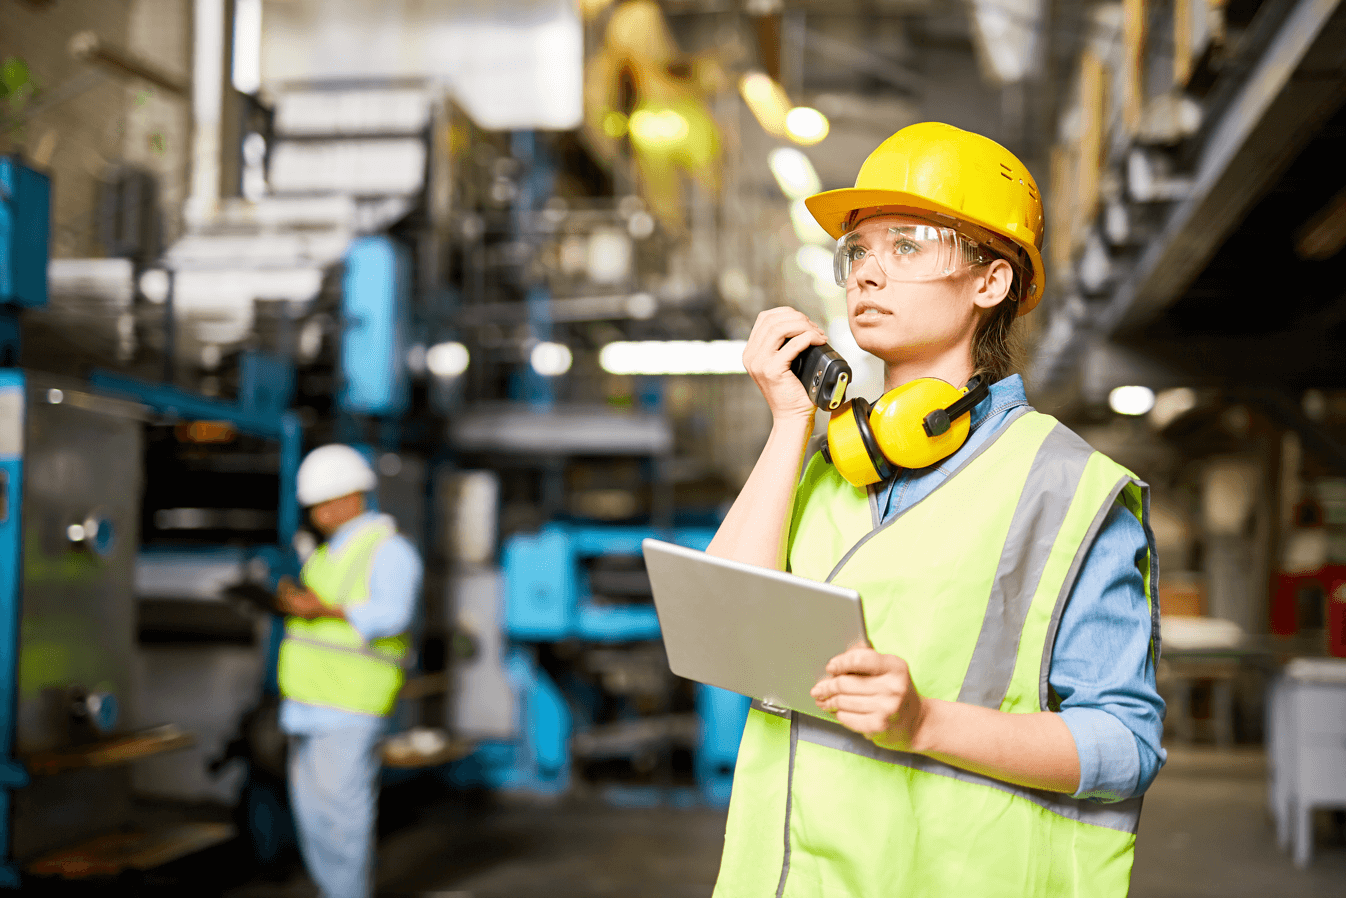 Safetec On-site Chemical Inventory Auditing Services